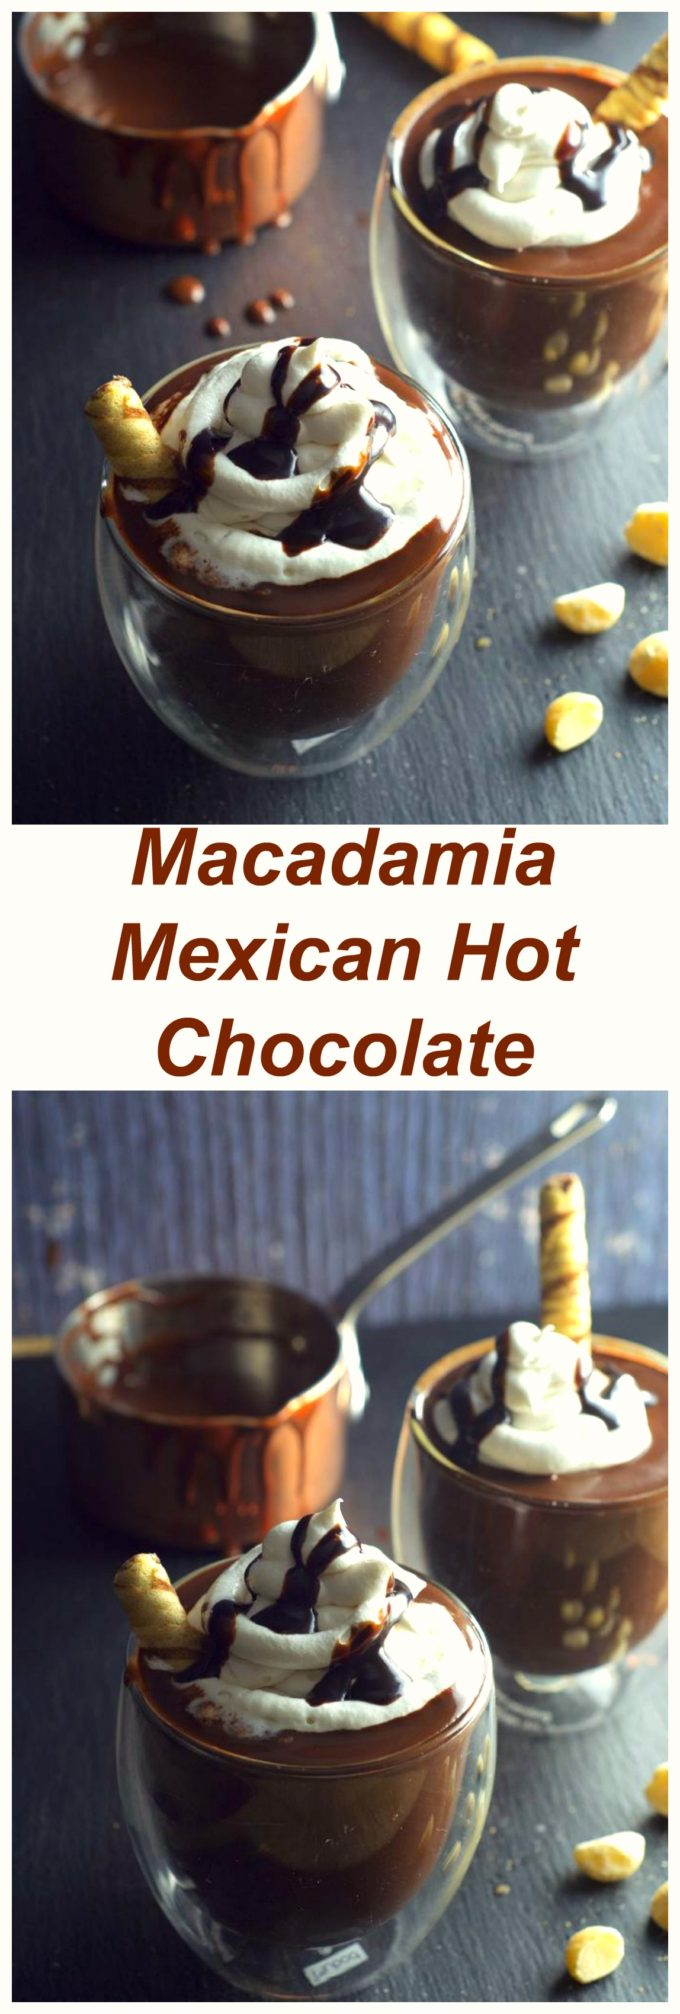 Macadamia Mexican Hot Chocolate